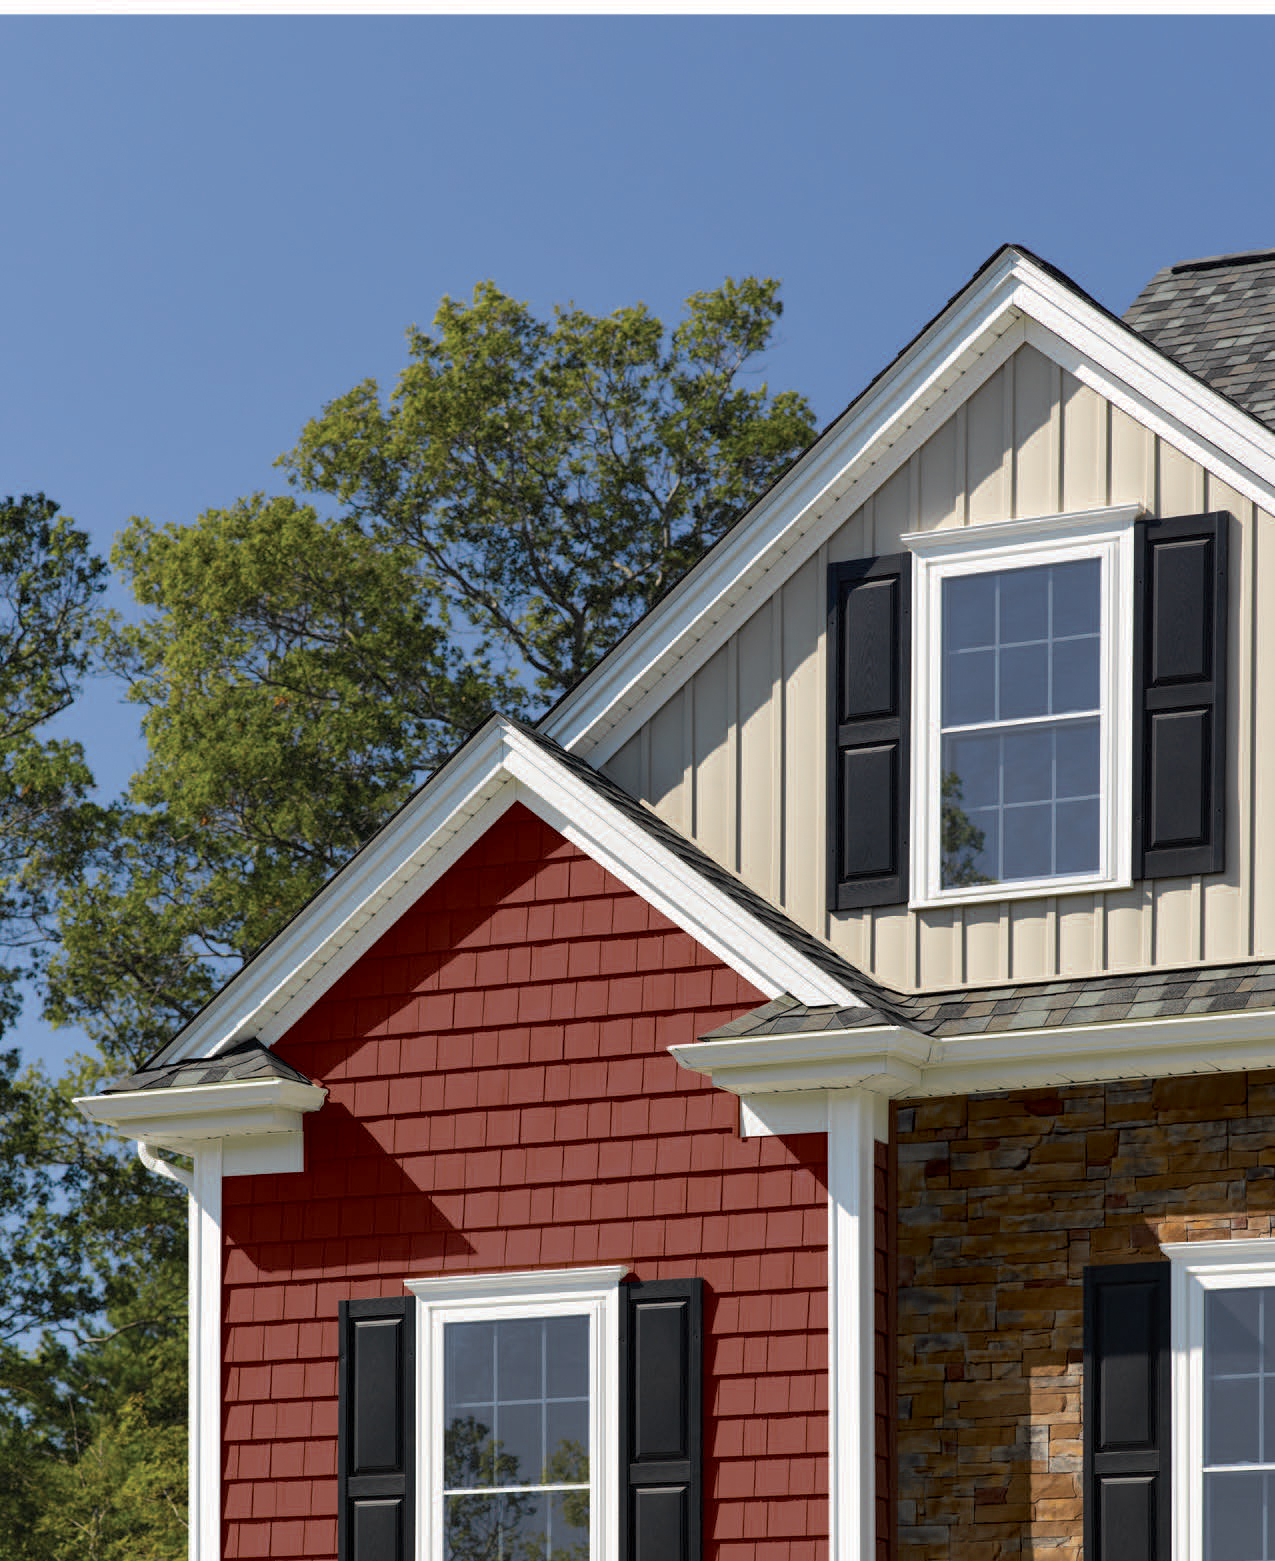 CertainTeed Siding Mix and Match Exterior Bumpout